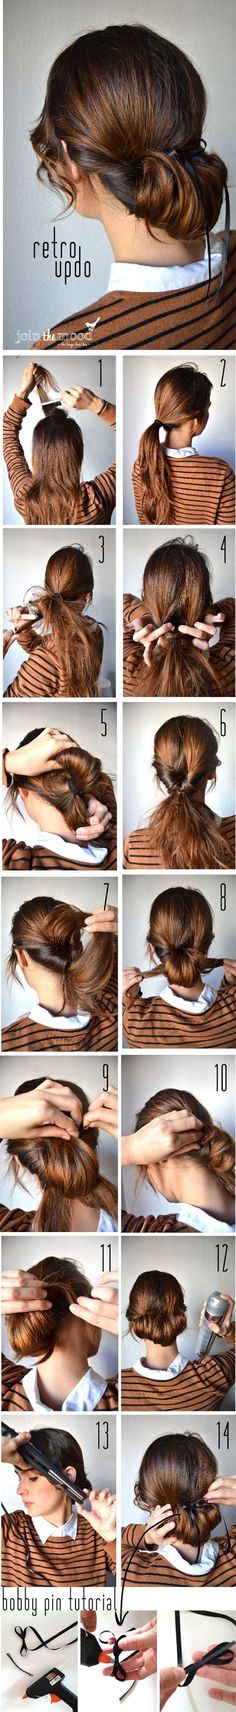 http://www.myhairstyling.com/wp-content/uploads/2013/06/Make-A-Retro-UpDo-hairstyles-tutorial.jpg